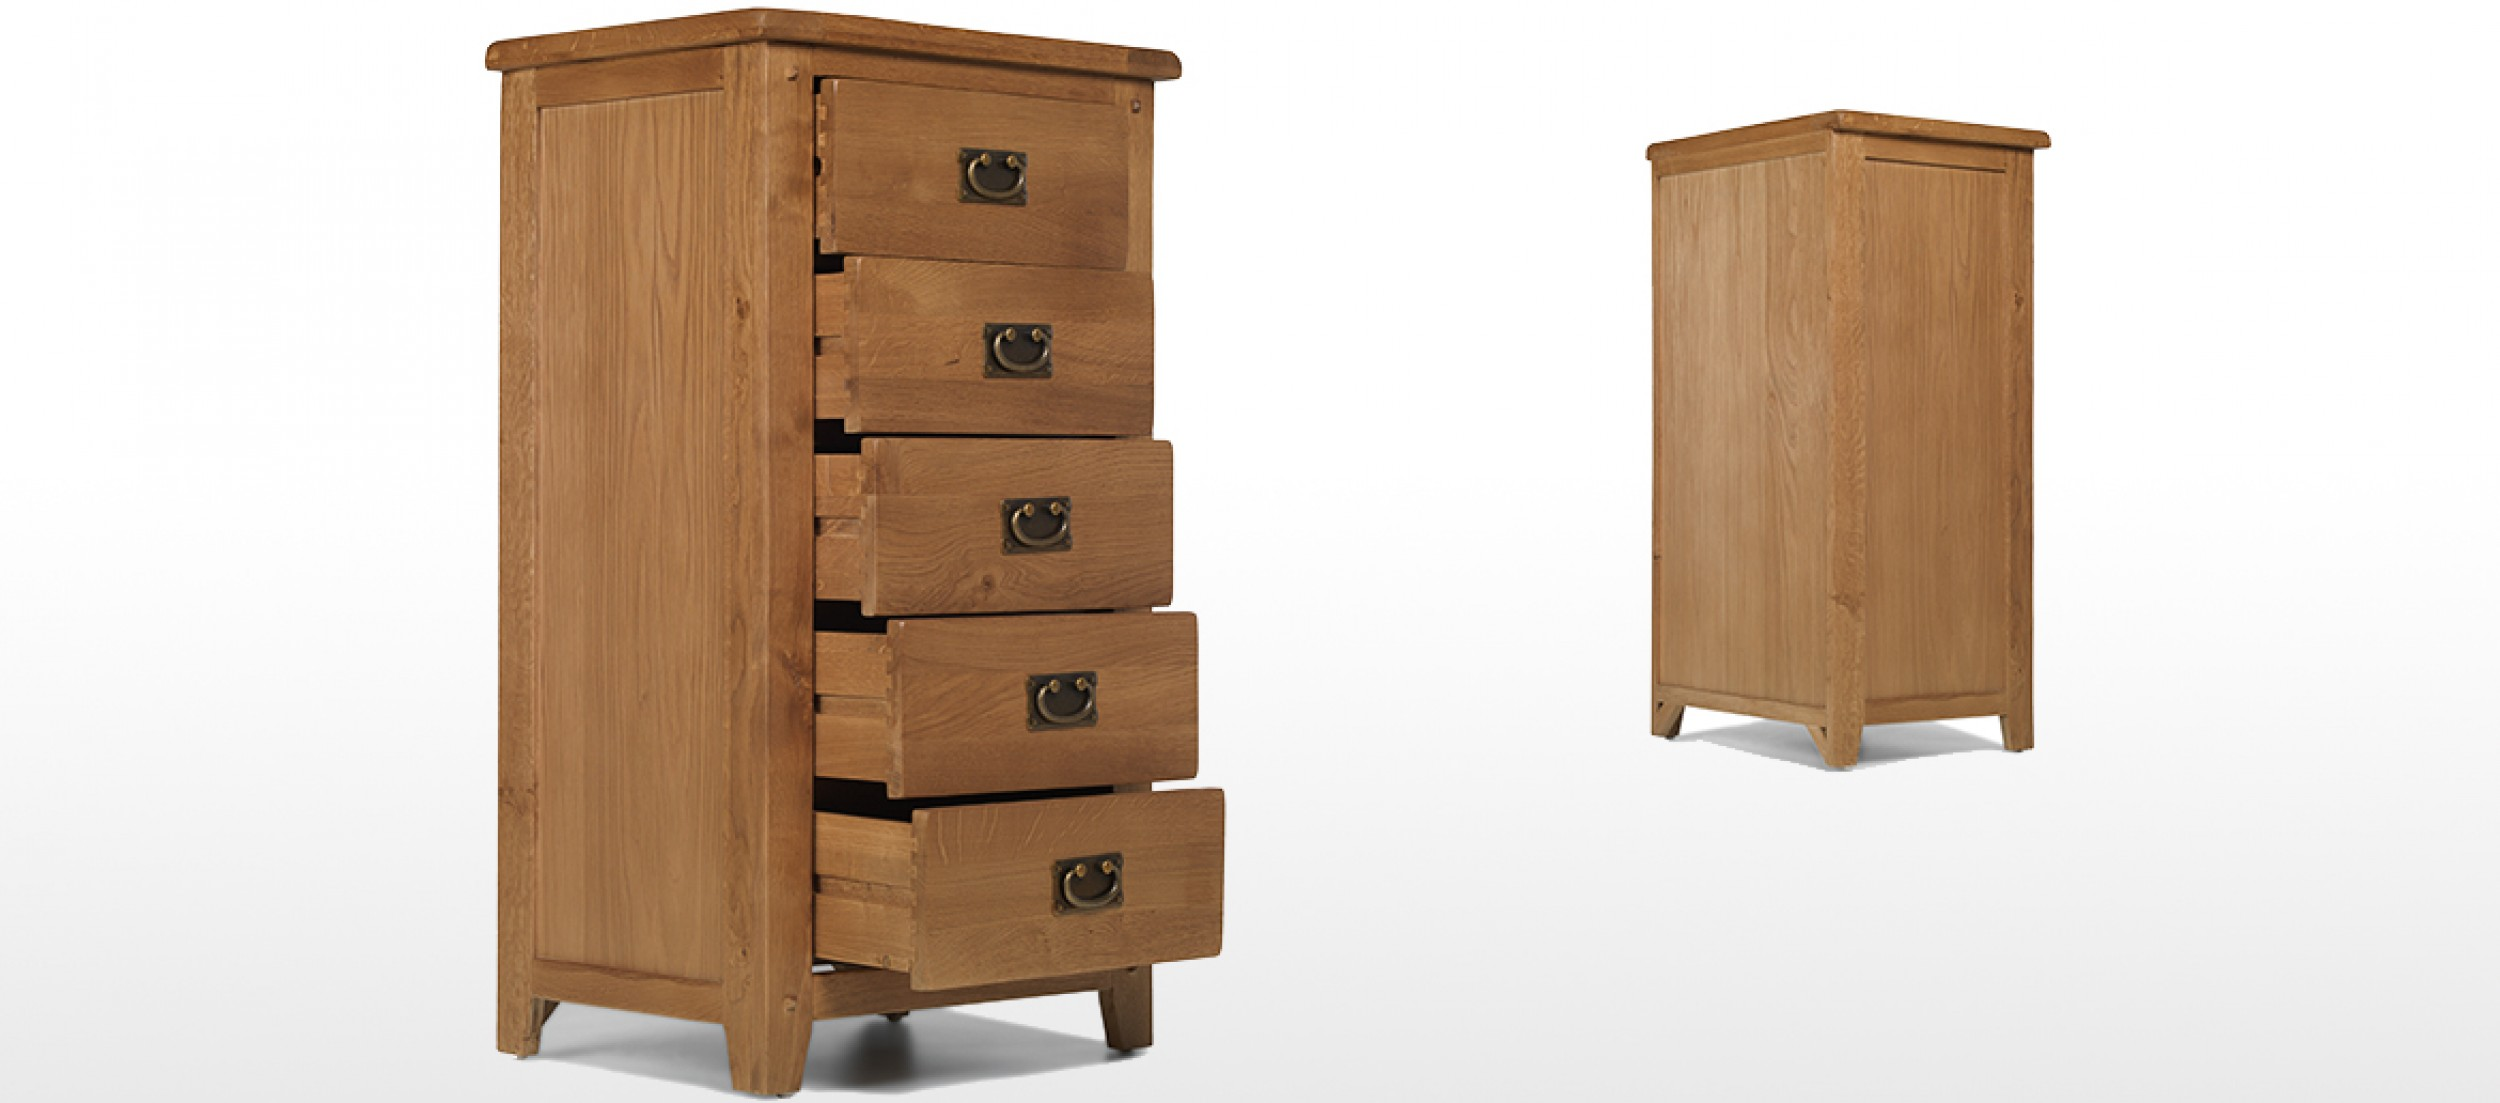 rustic oak 5 drawer tall chest of drawers quercus living. Black Bedroom Furniture Sets. Home Design Ideas